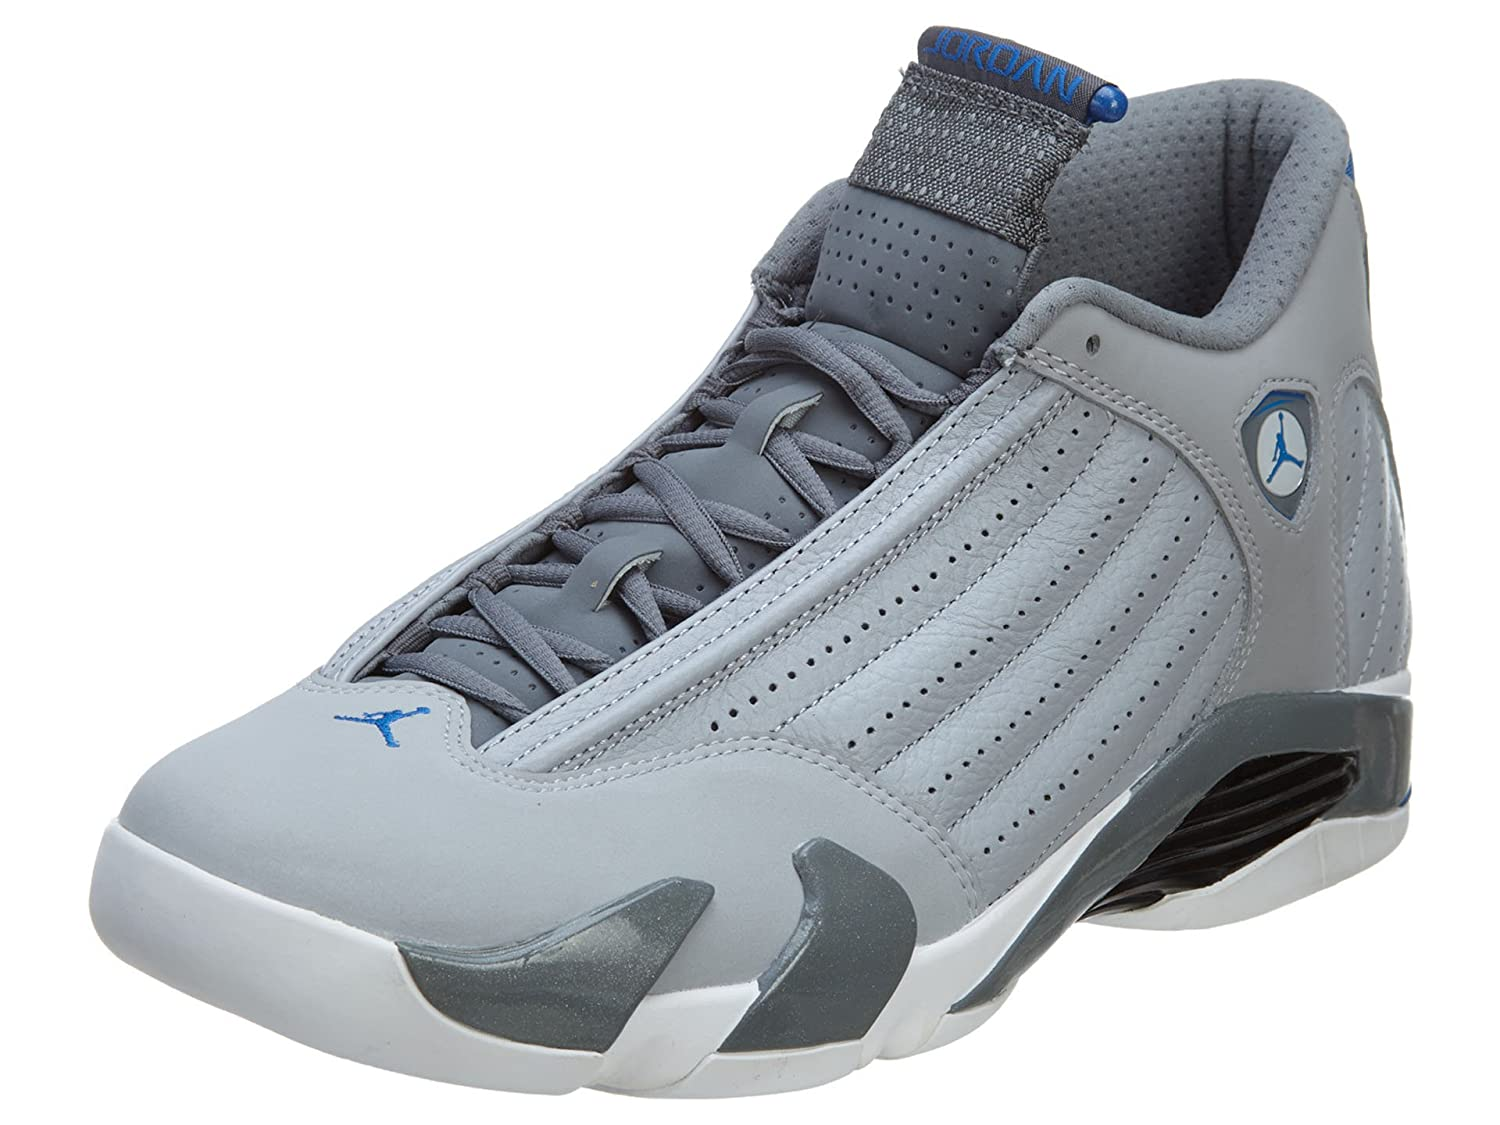 97fd27ee9e7f Amazon.com  NIKE Air Jordan 14 Retro Men Sneakers Wolf Grey Cool  Grey White Sport Blue 487471-004 (SIZE  13)  Shoes